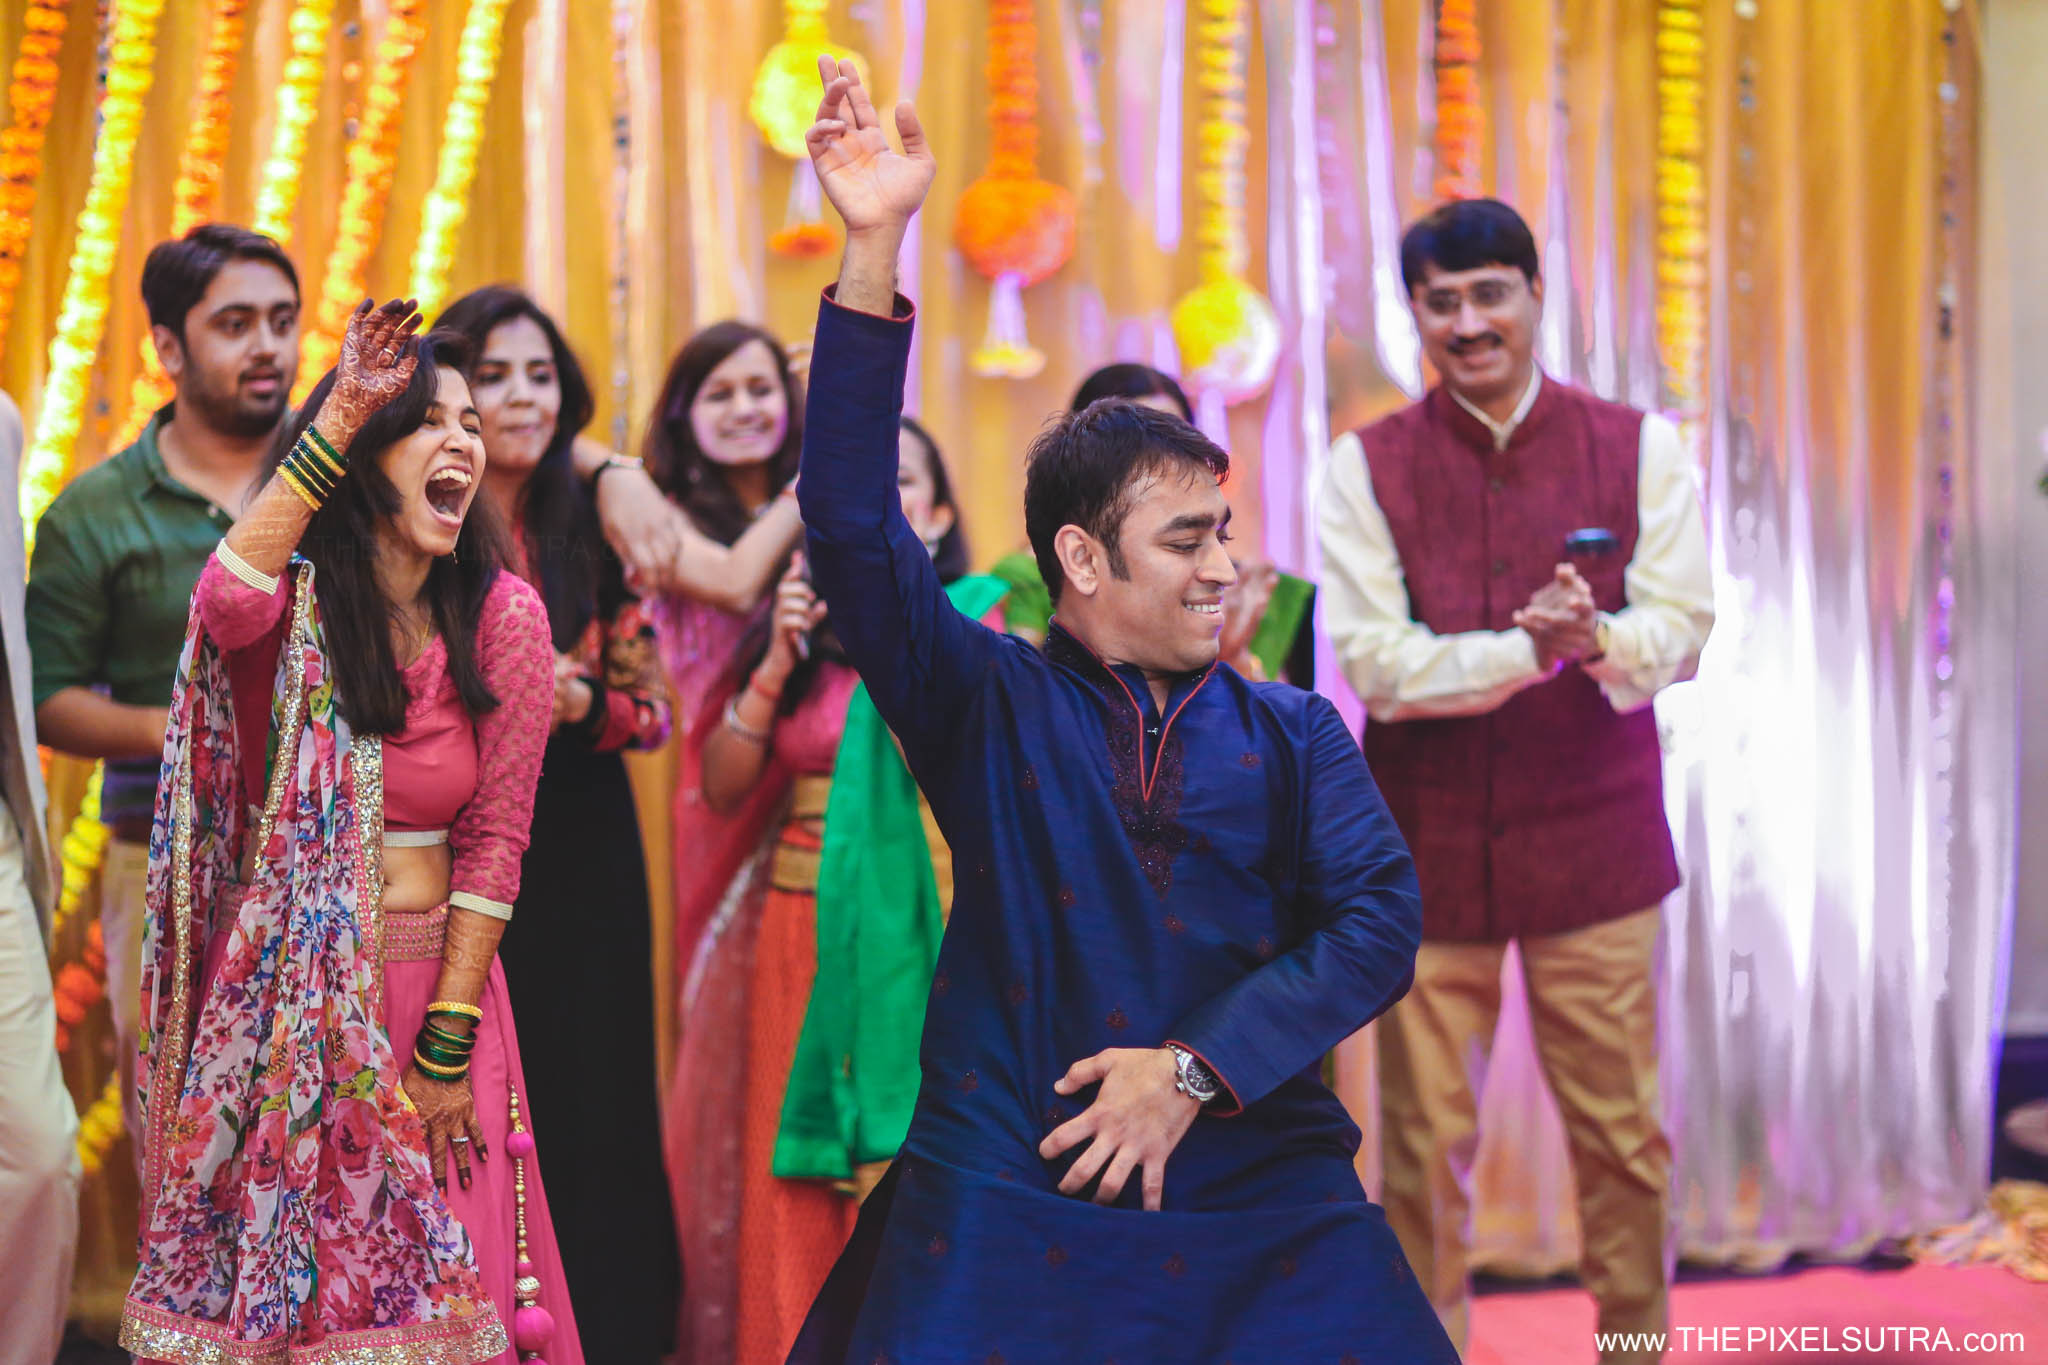 The Pixel Sutra Nachiket x Priyanka Candid Wedding photographer Mumbai Best  (13).jpg